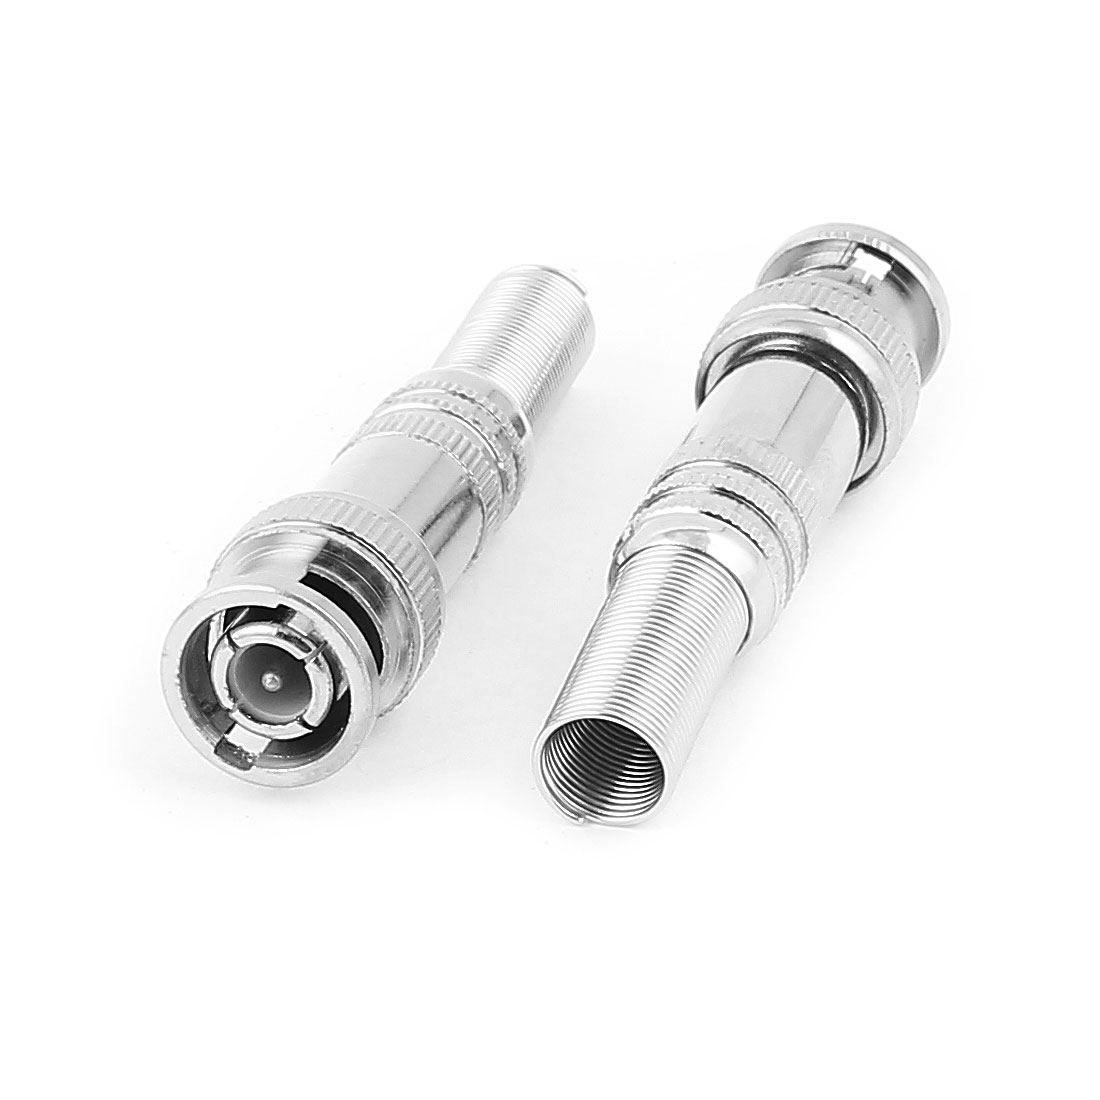 2pcs Spring RF Coaxial RG59 BNC Male Connector Jack Video Adapter for CCVT Camera